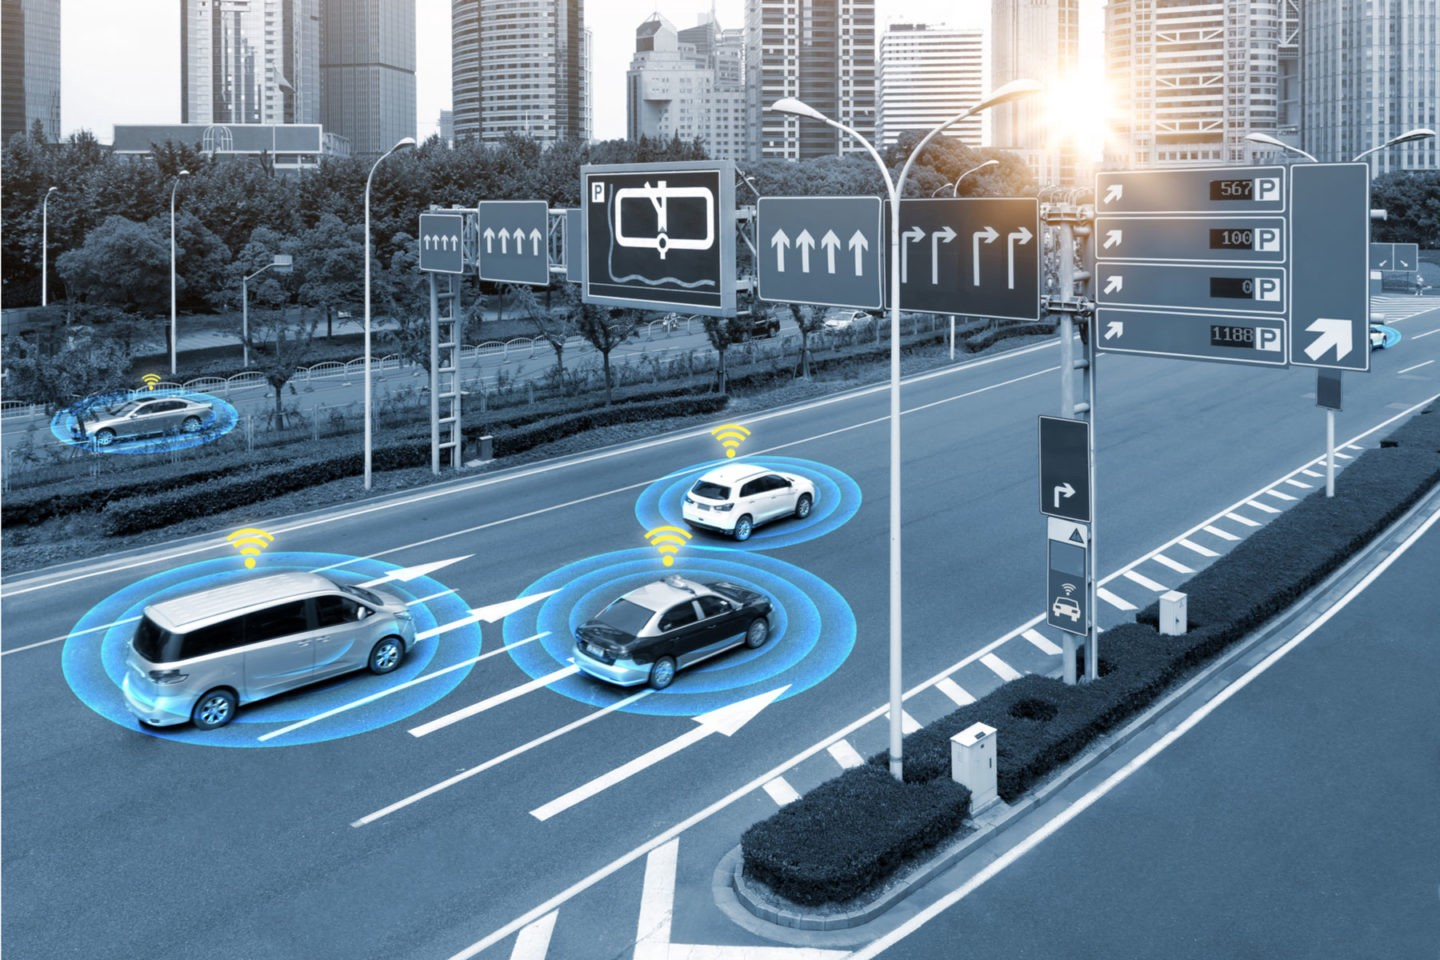 COVID-19 Impact On Connected Cars Market In Automotive Industry